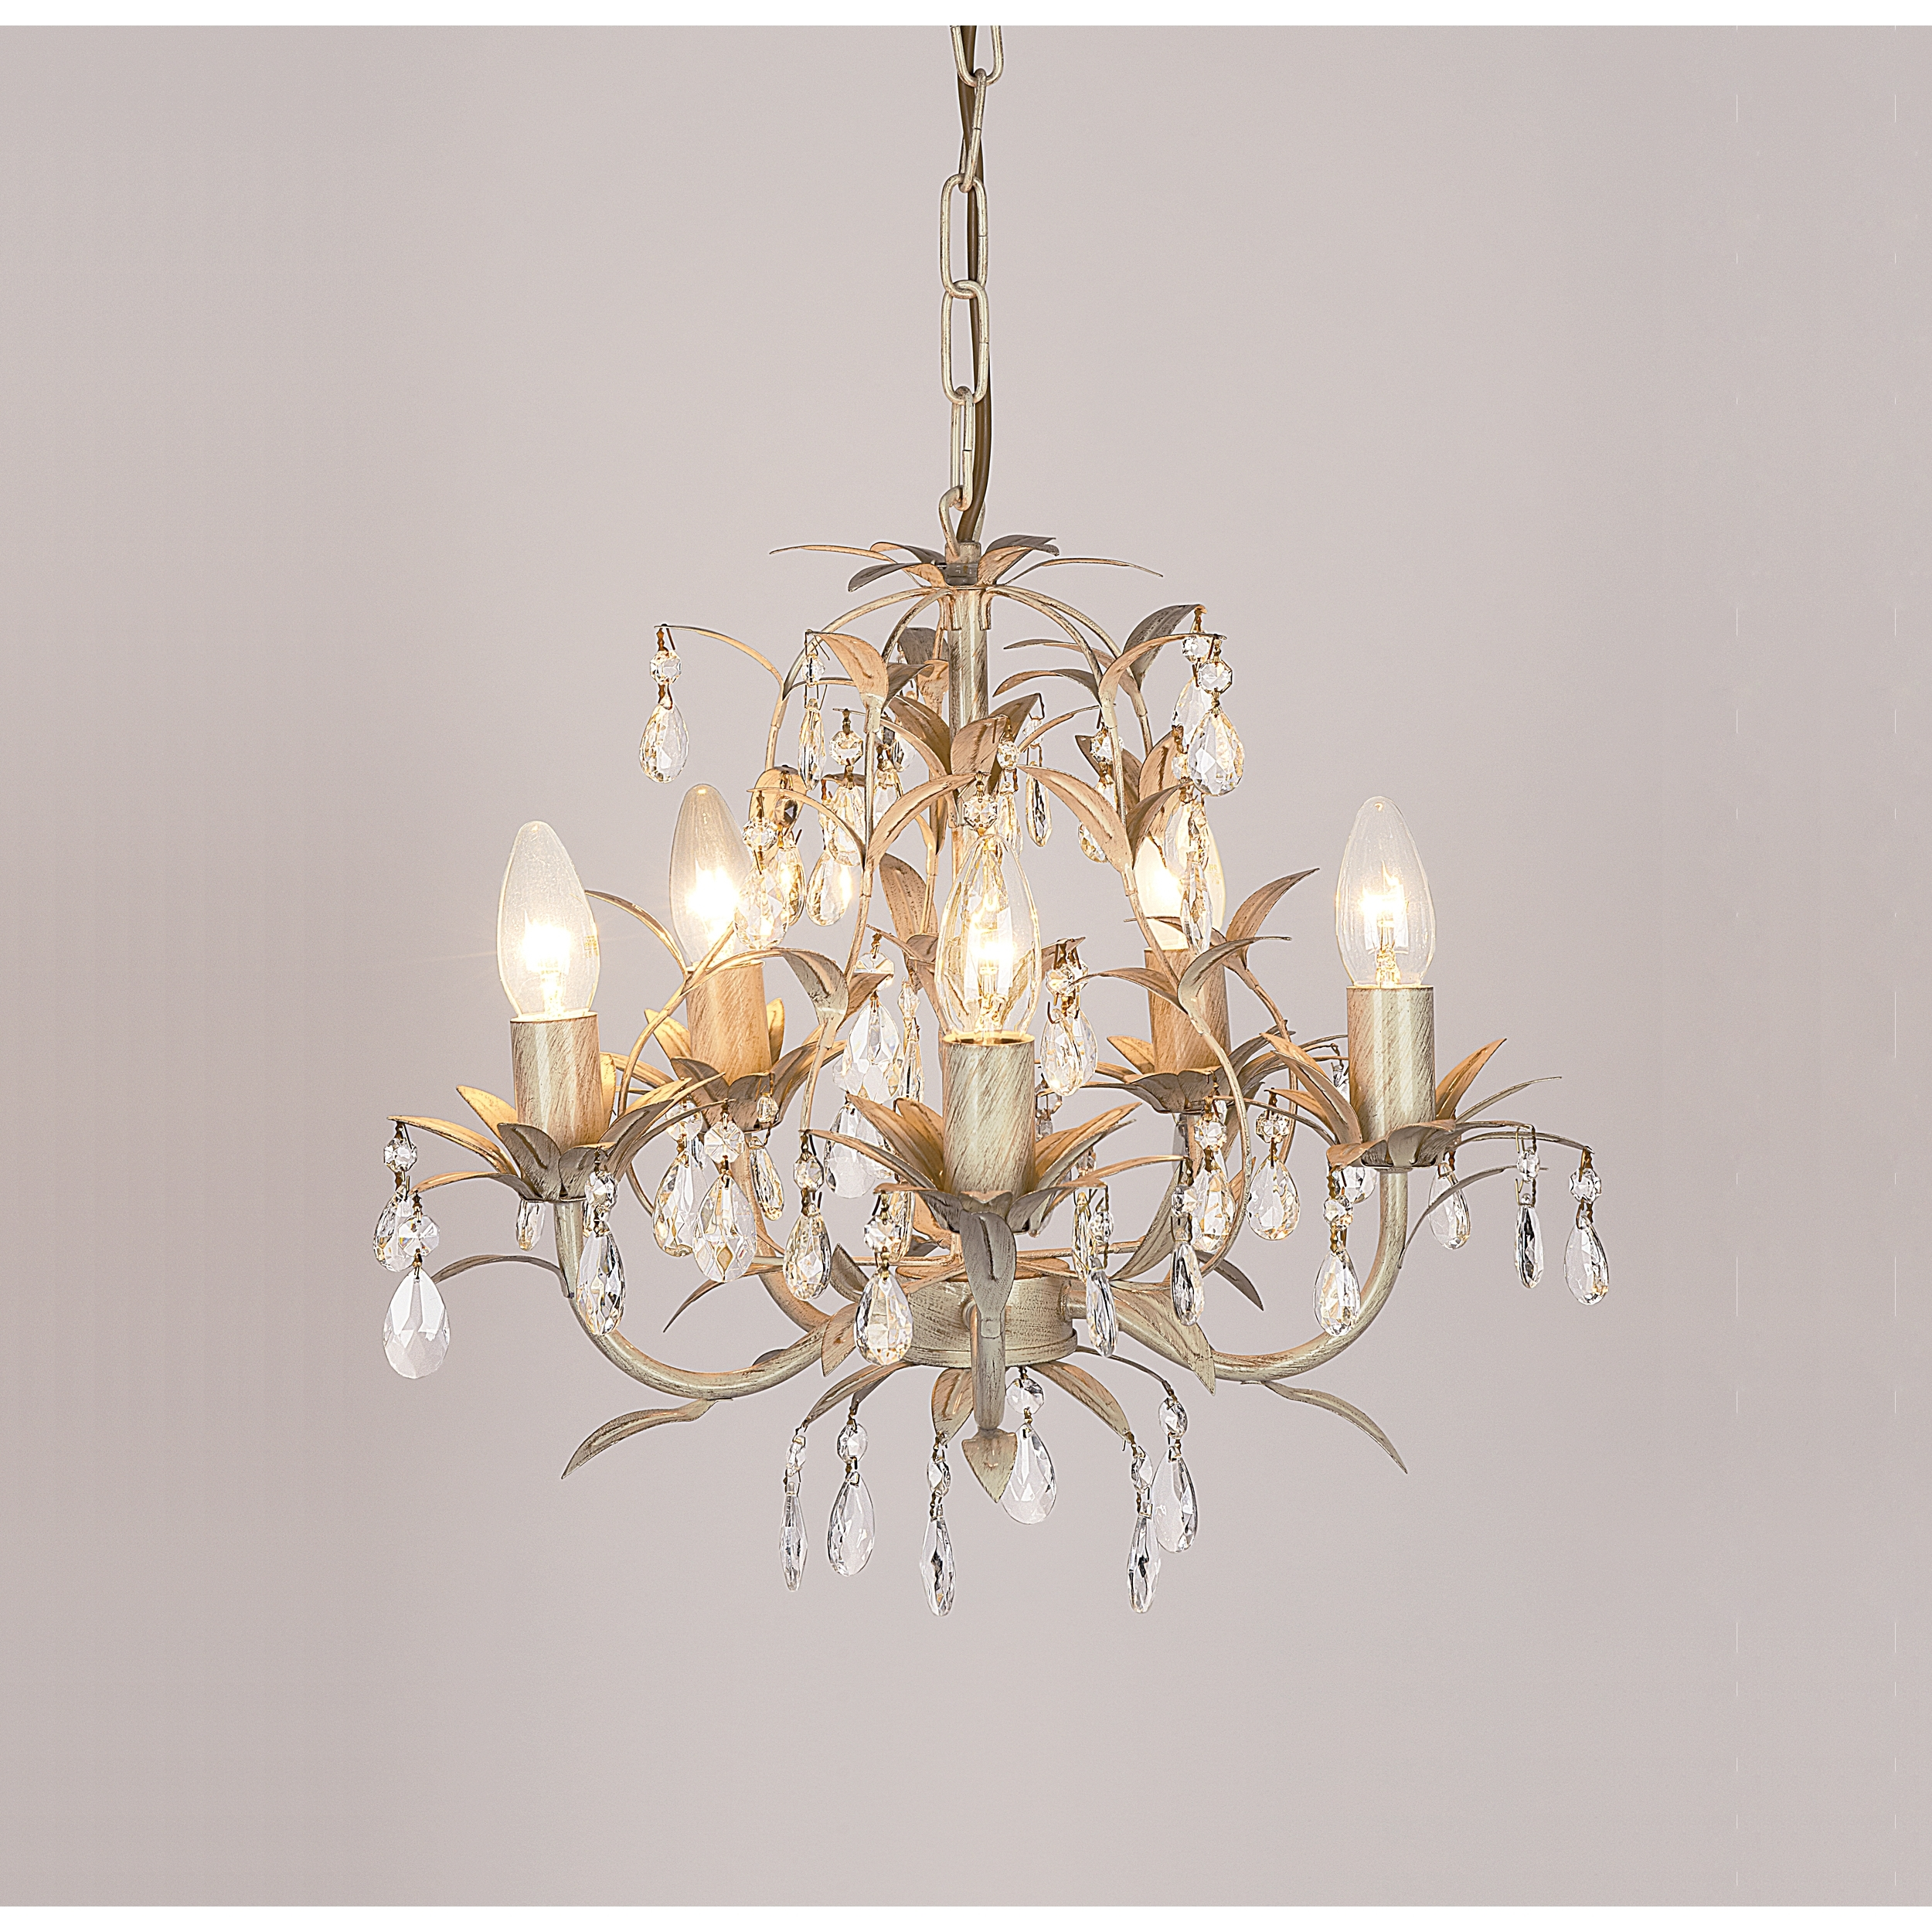 Cream Chandelier Lights With Regard To Well Known Lavenham Cream And Clear Glass 8 Light Chandelier (View 4 of 15)